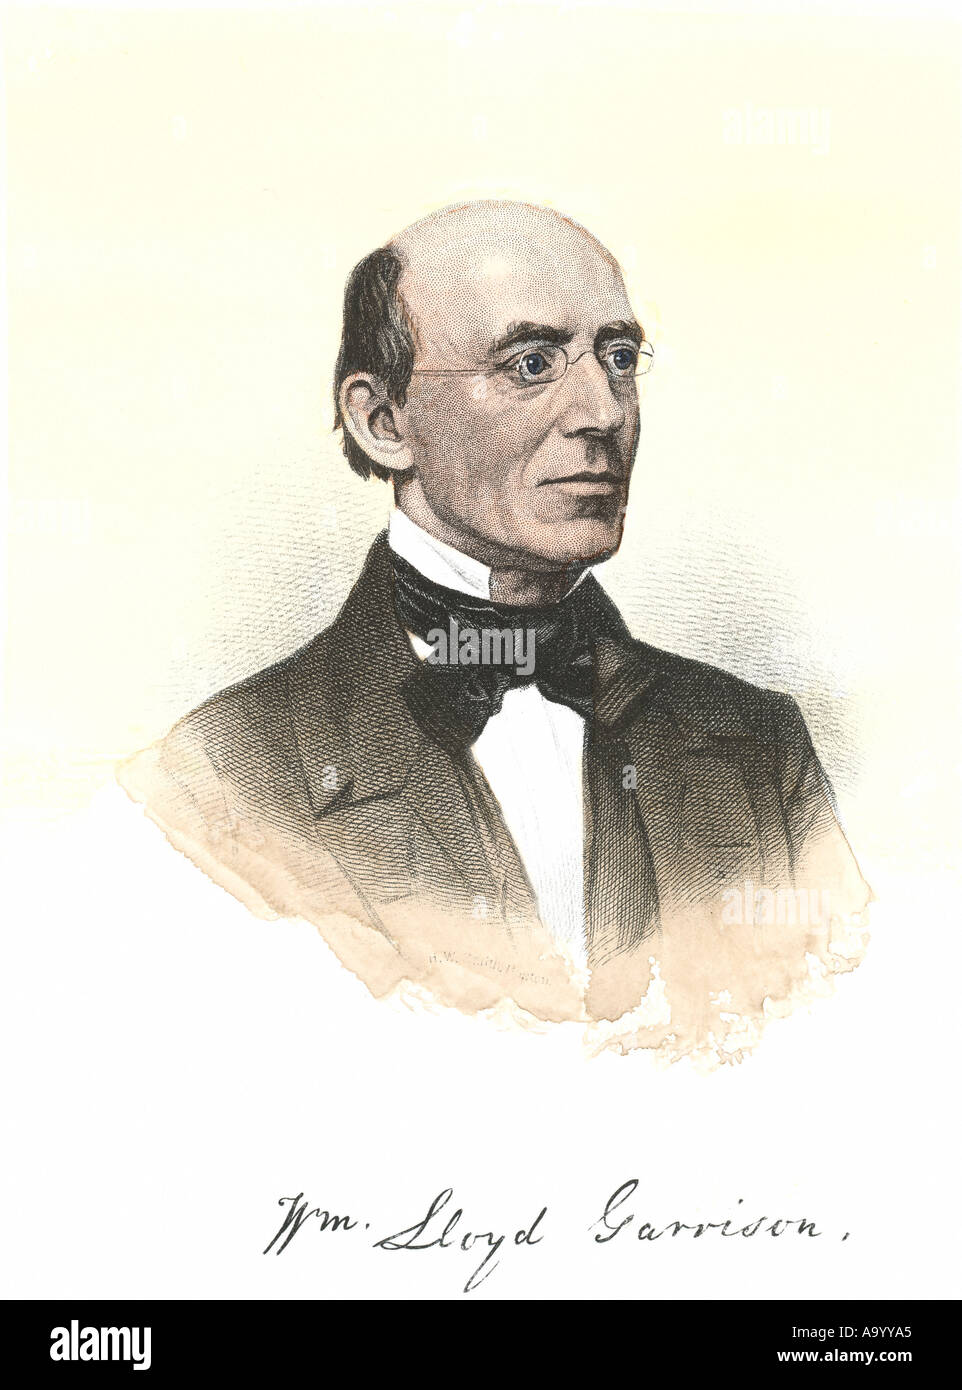 William Lloyd Garrison portrait with autograph. Hand-colored steel engraving - Stock Image